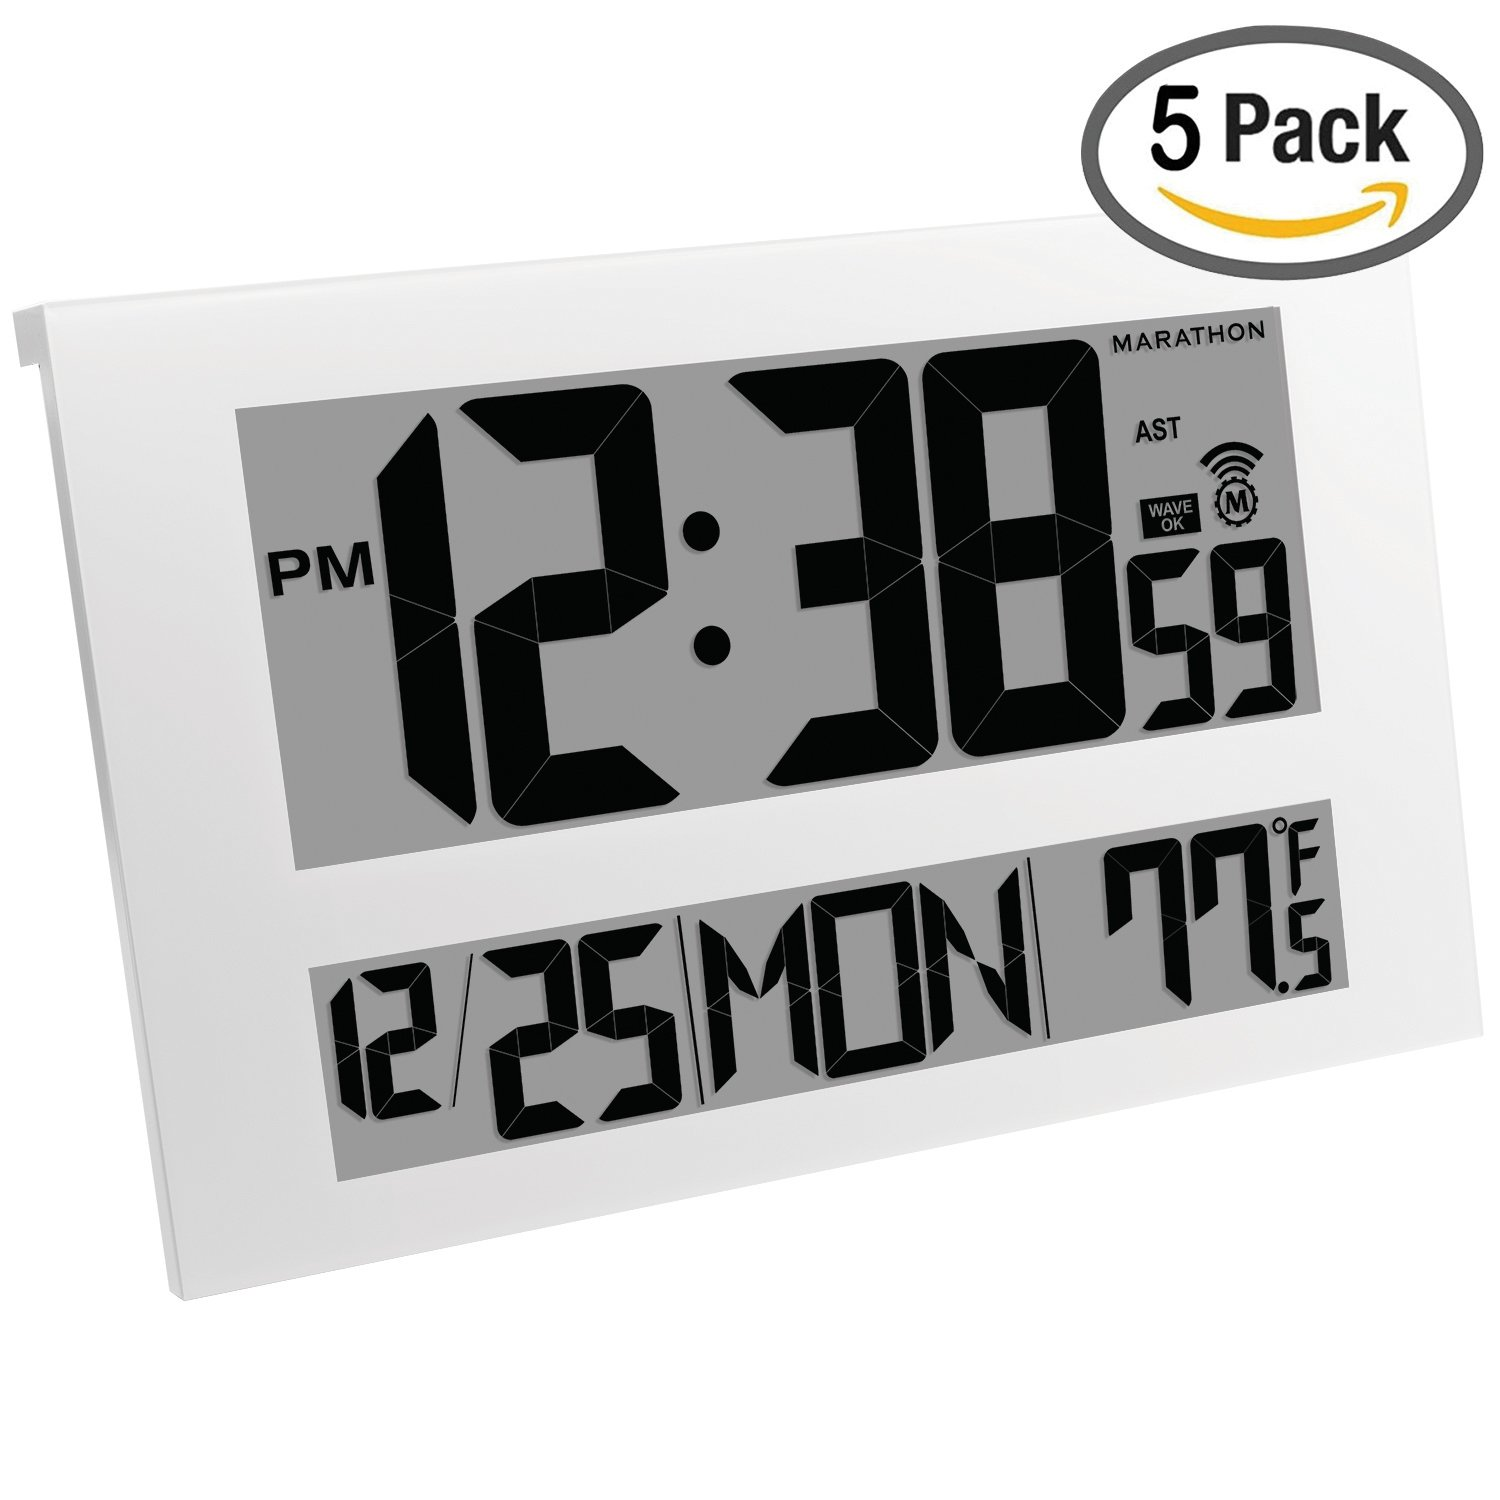 MARATHON CL030025WH/5 Commercial Grade Jumbo Atomic Wall Clock with 6 Time Zones, Indoor Temperature & Date, White (5 Pack)